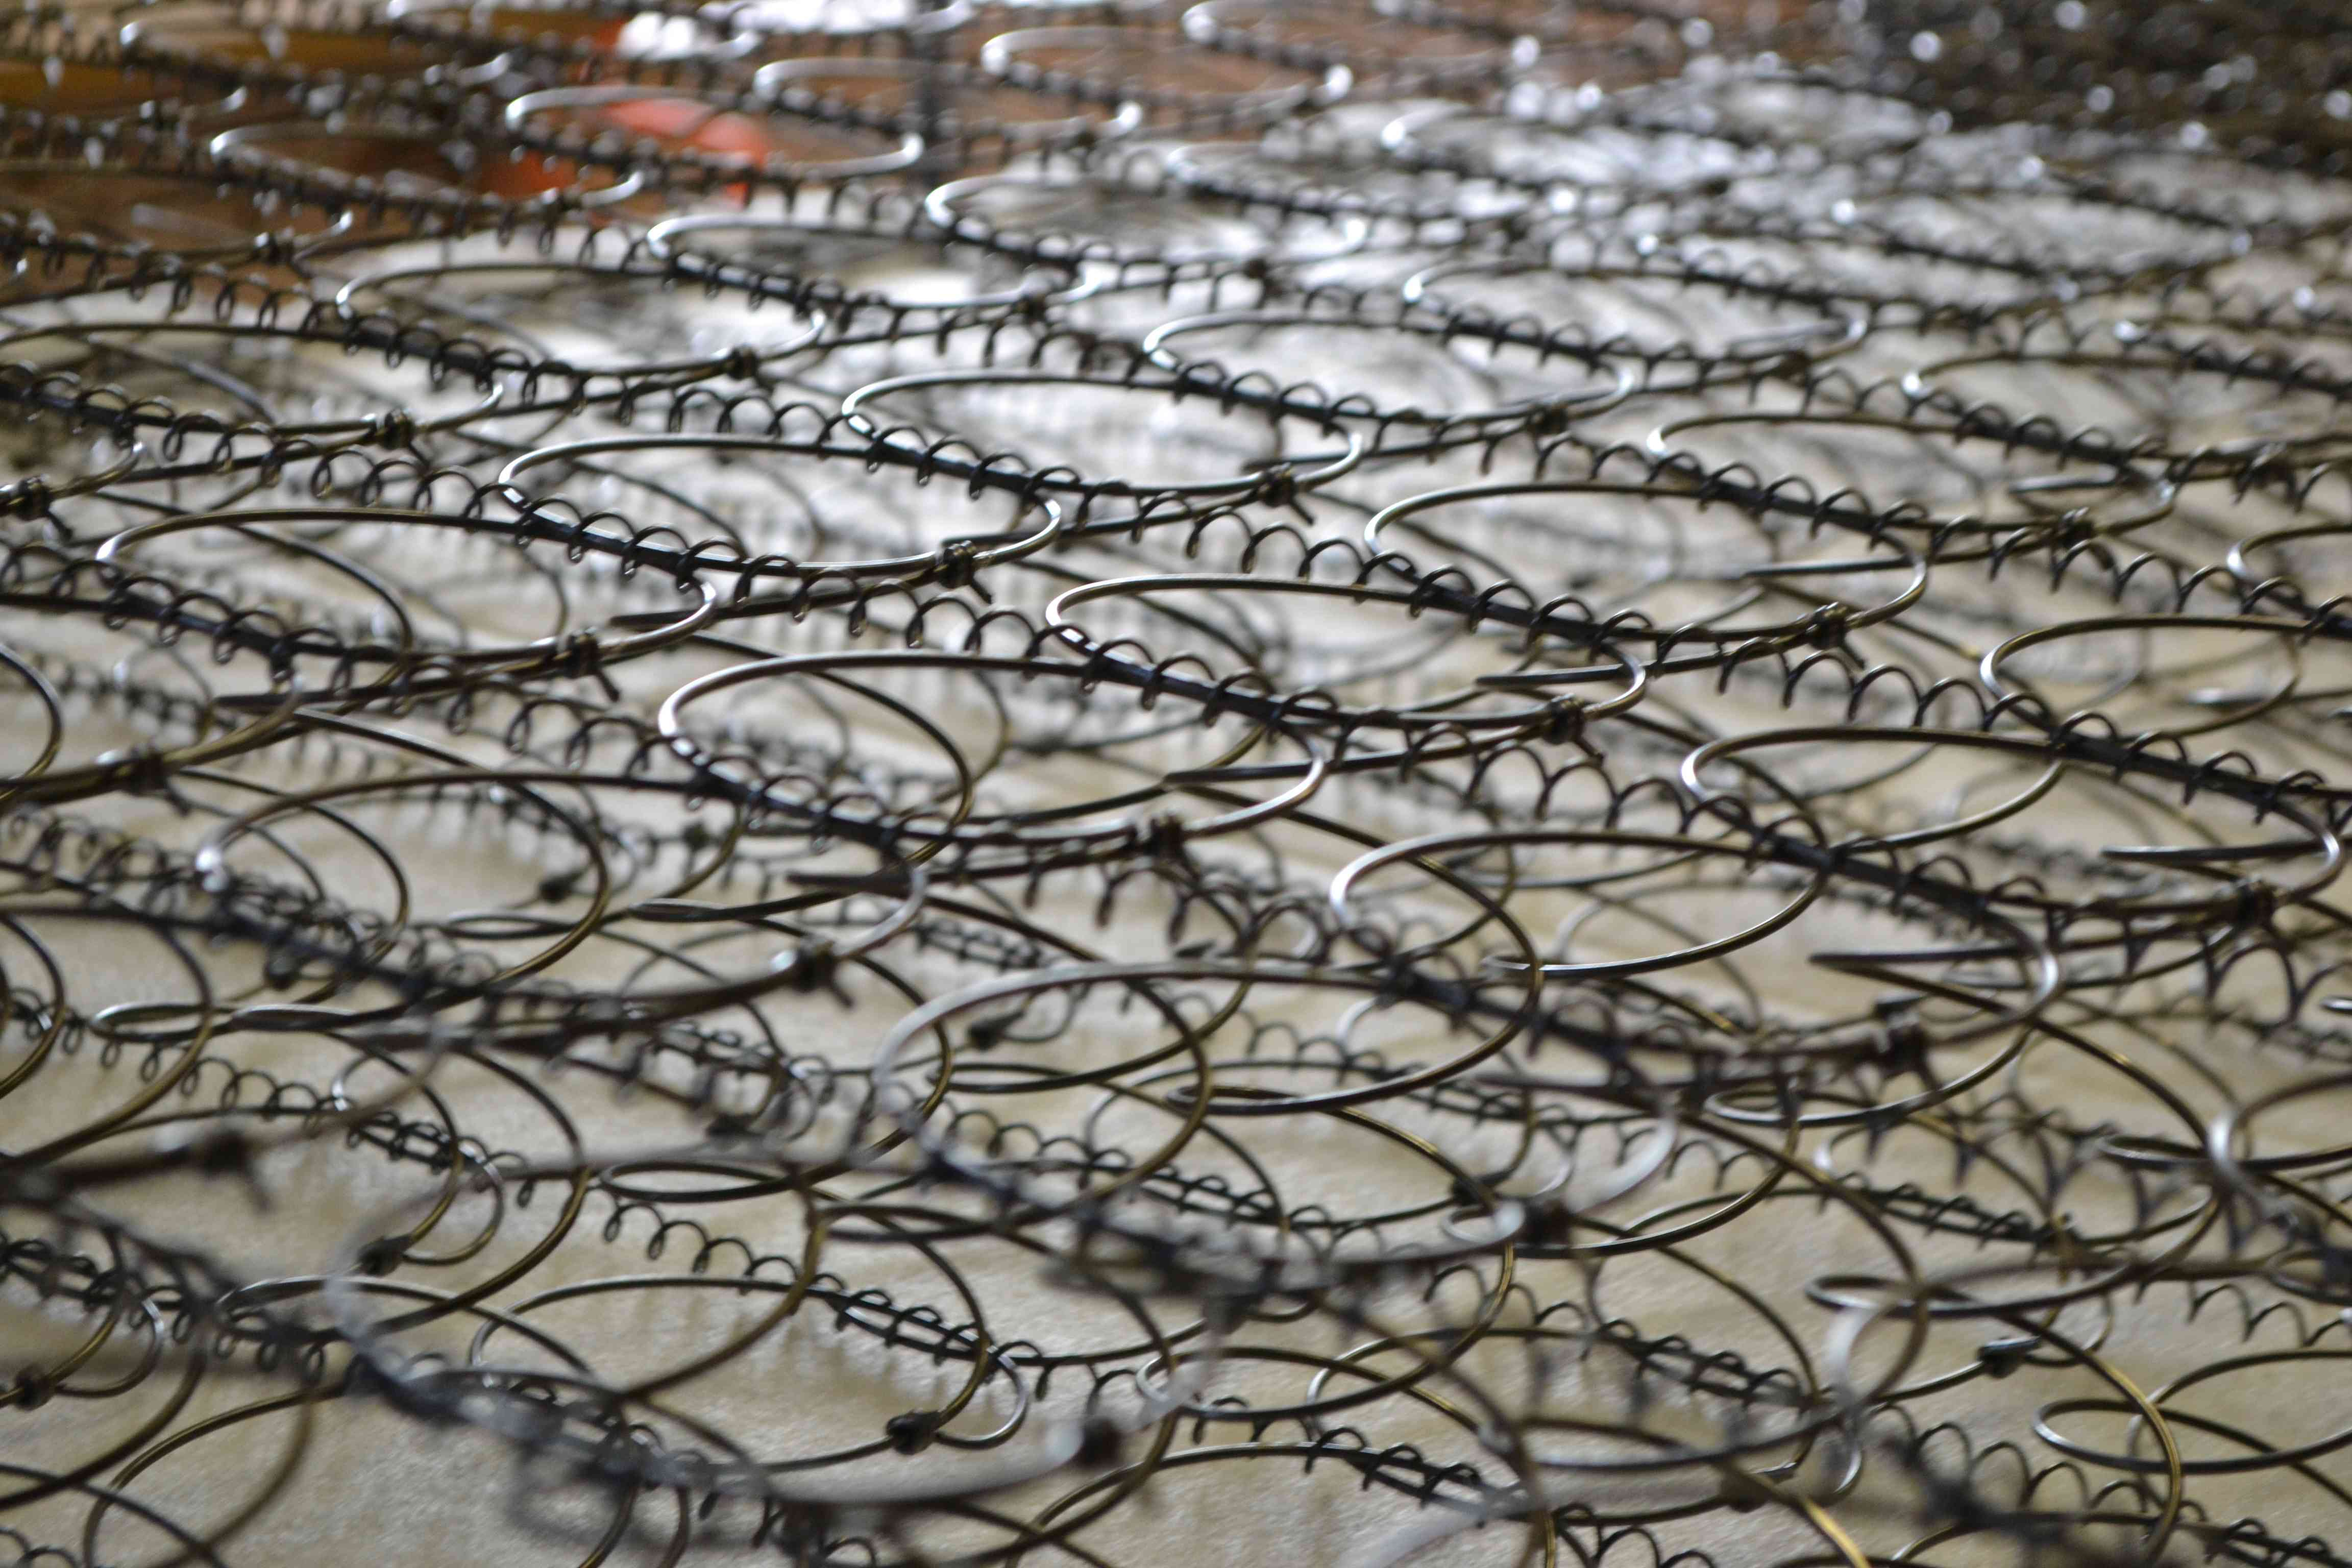 Mattress springs in a factory